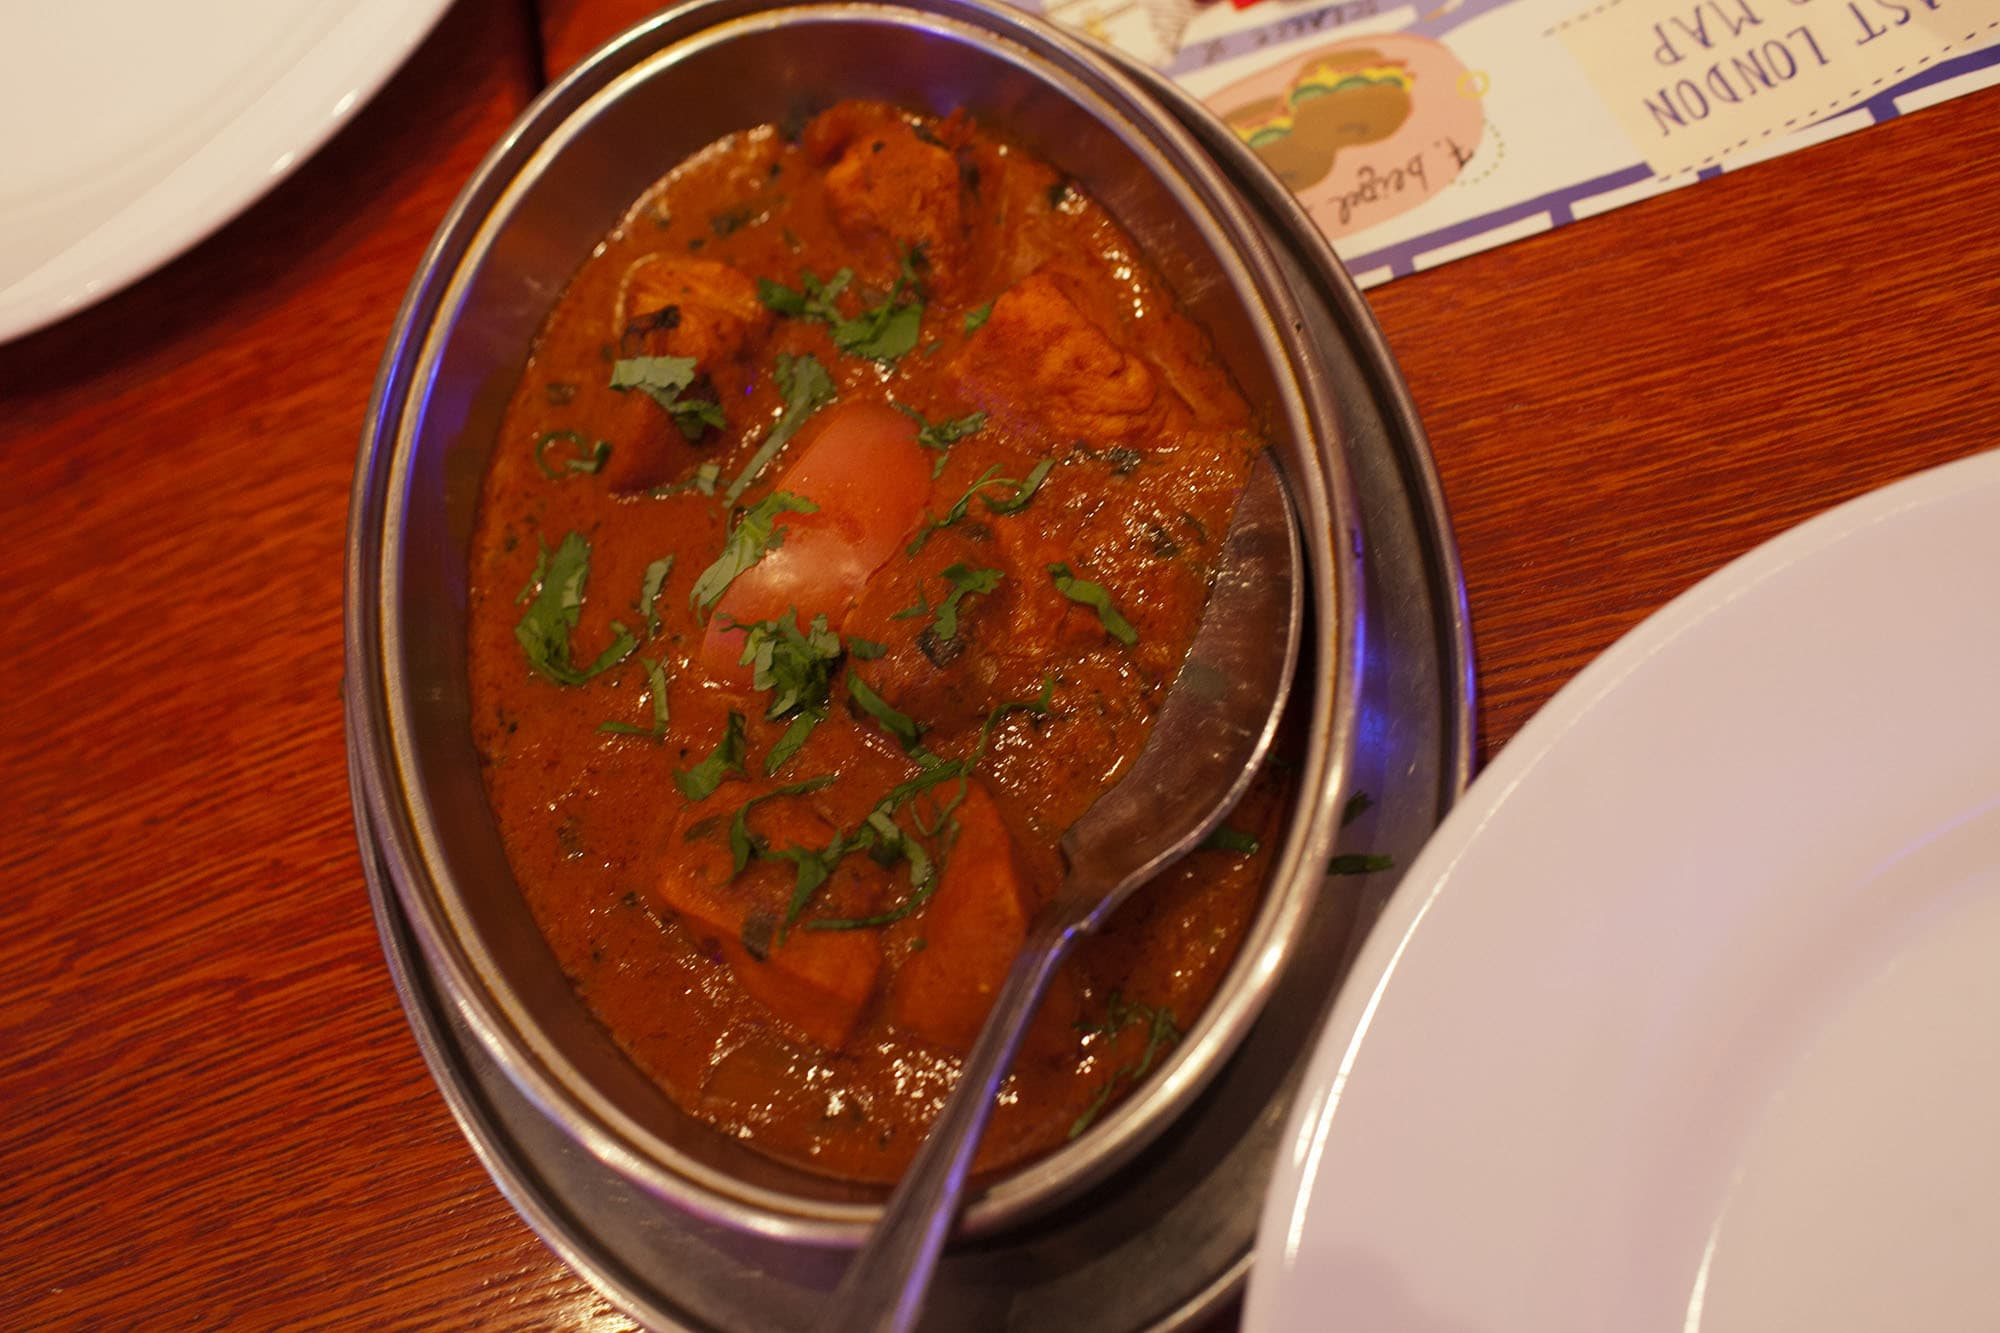 Curry at Aladin on the Eating London food tour in London, England